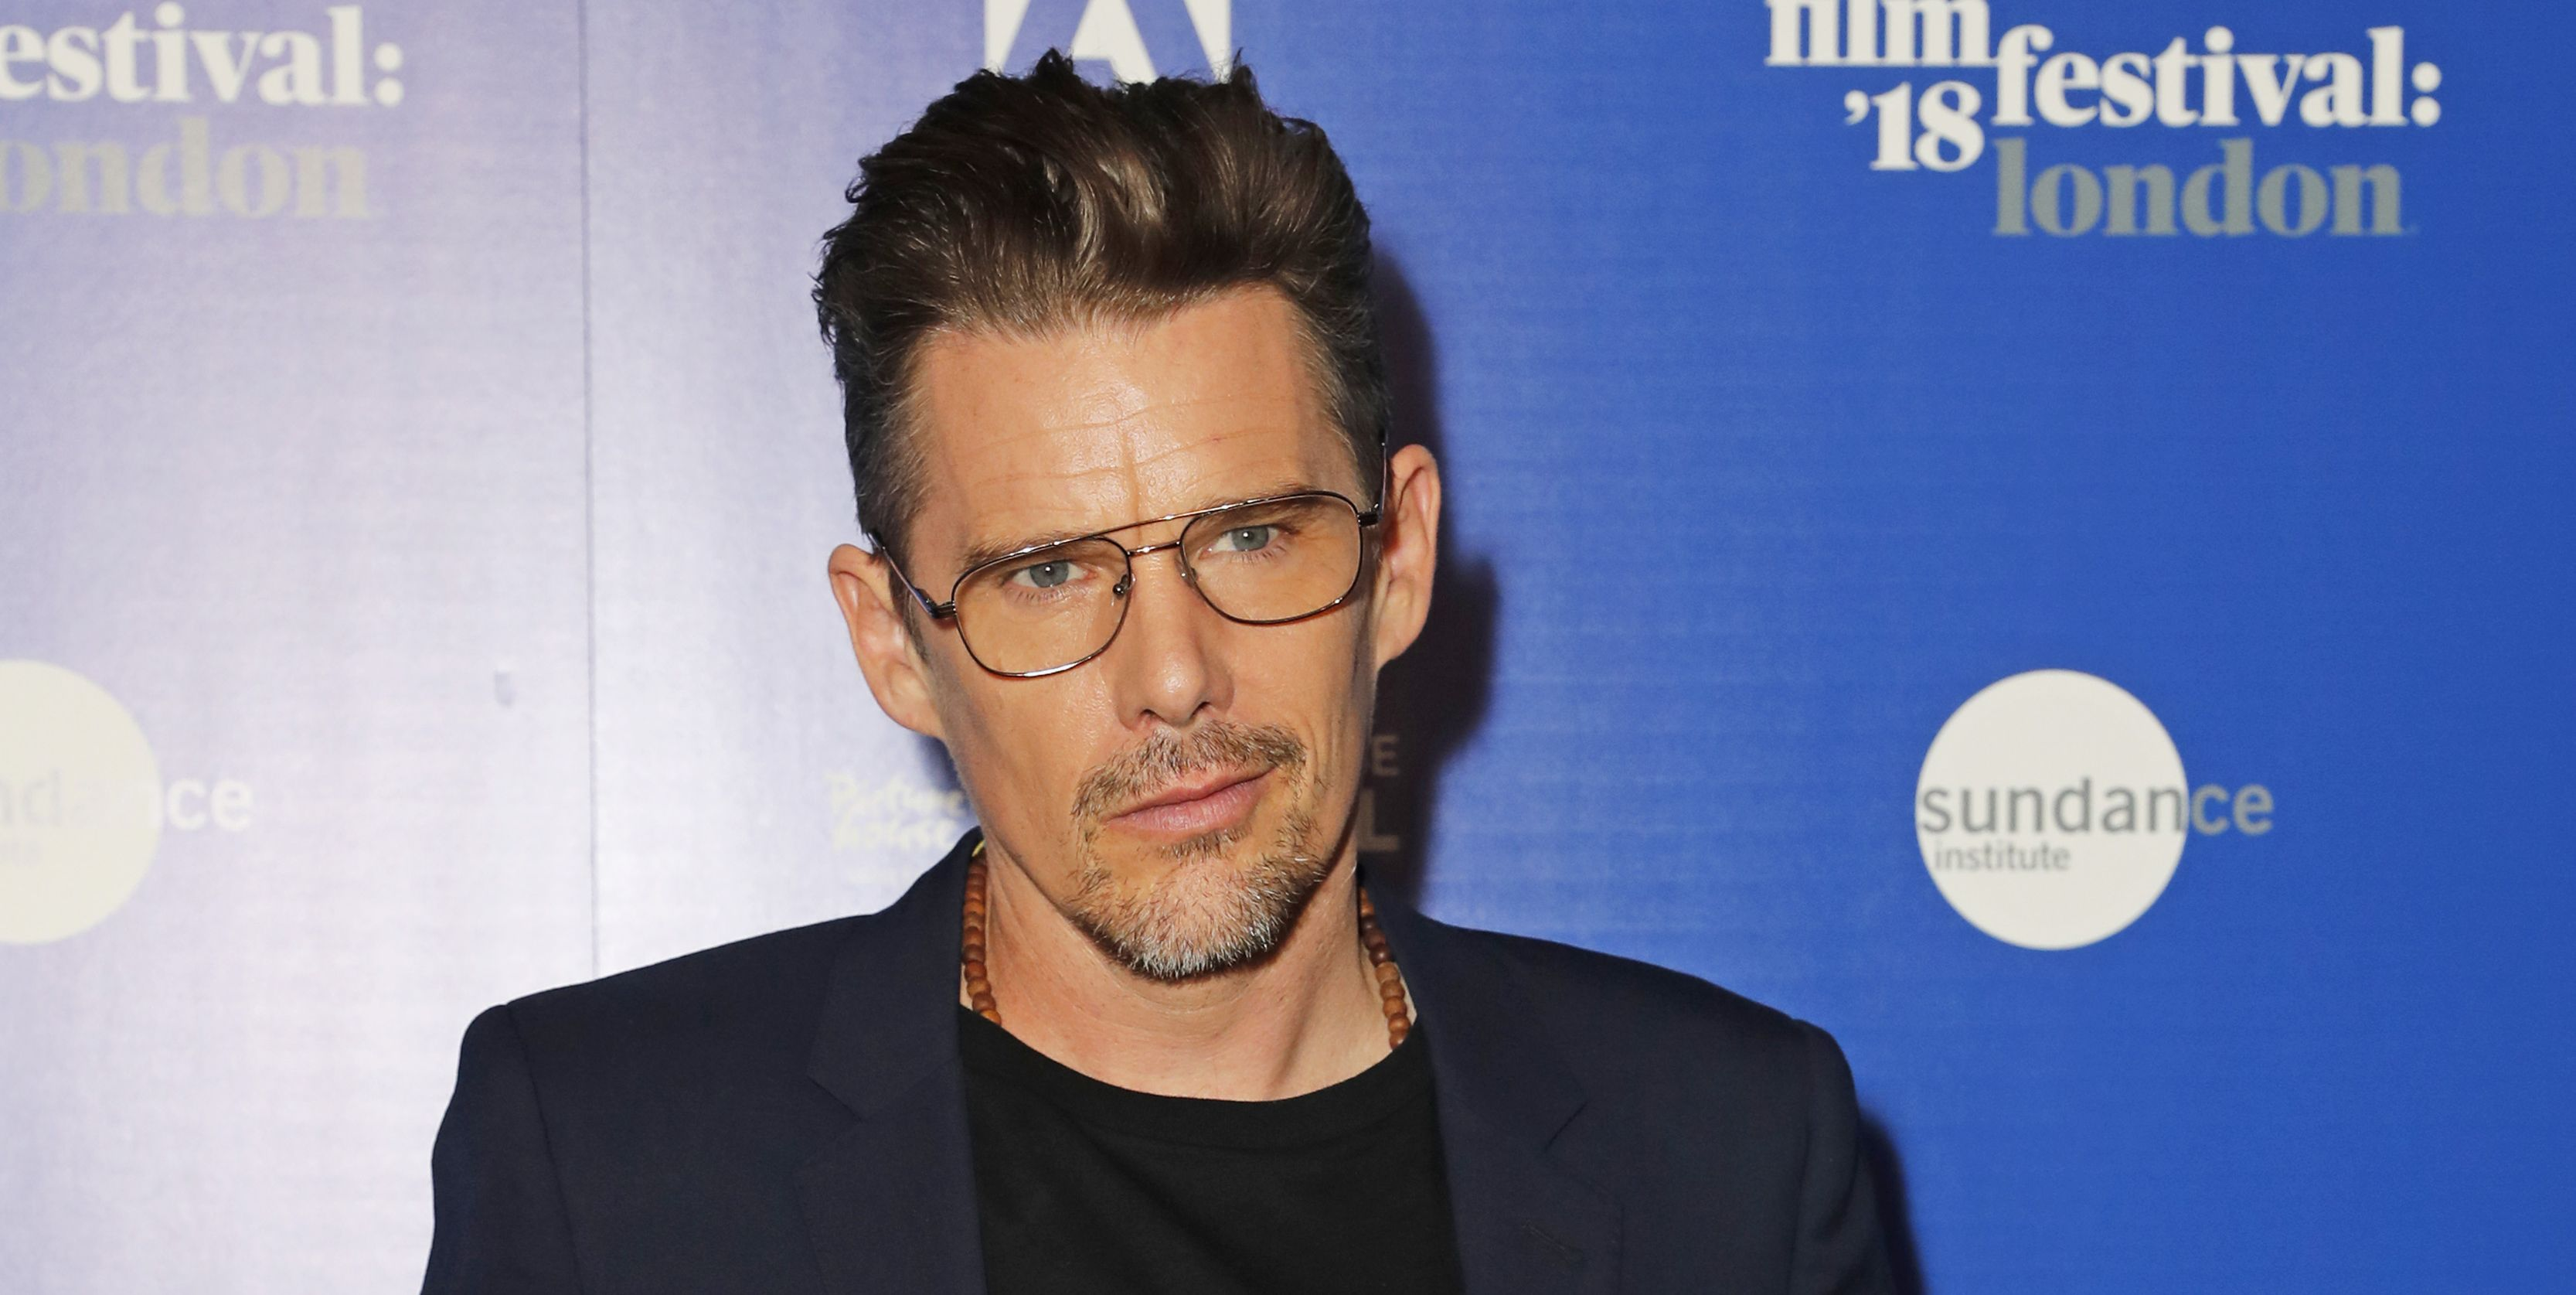 Ethan Hawke Just Showed You How To Wear A Band T-Shirt Like A Grown Up